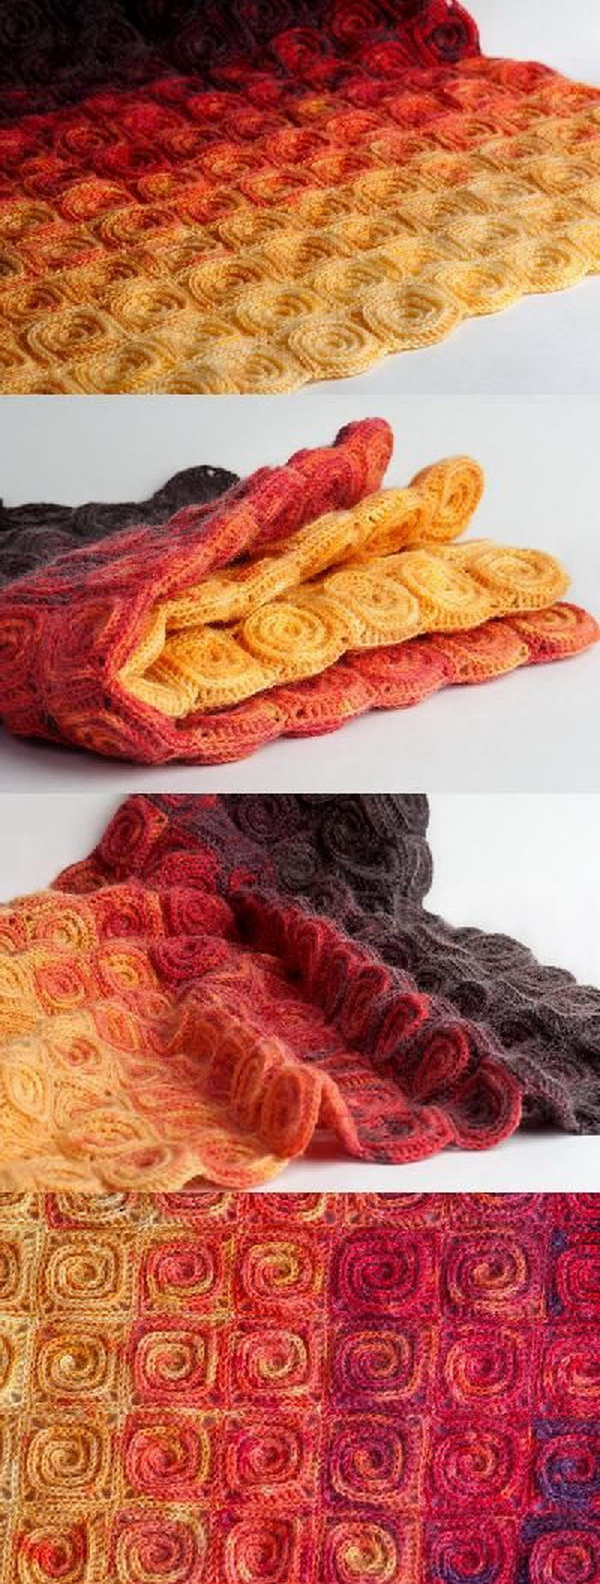 Quick And Easy Crochet Blanket Patterns For Beginners: Fire blanket.